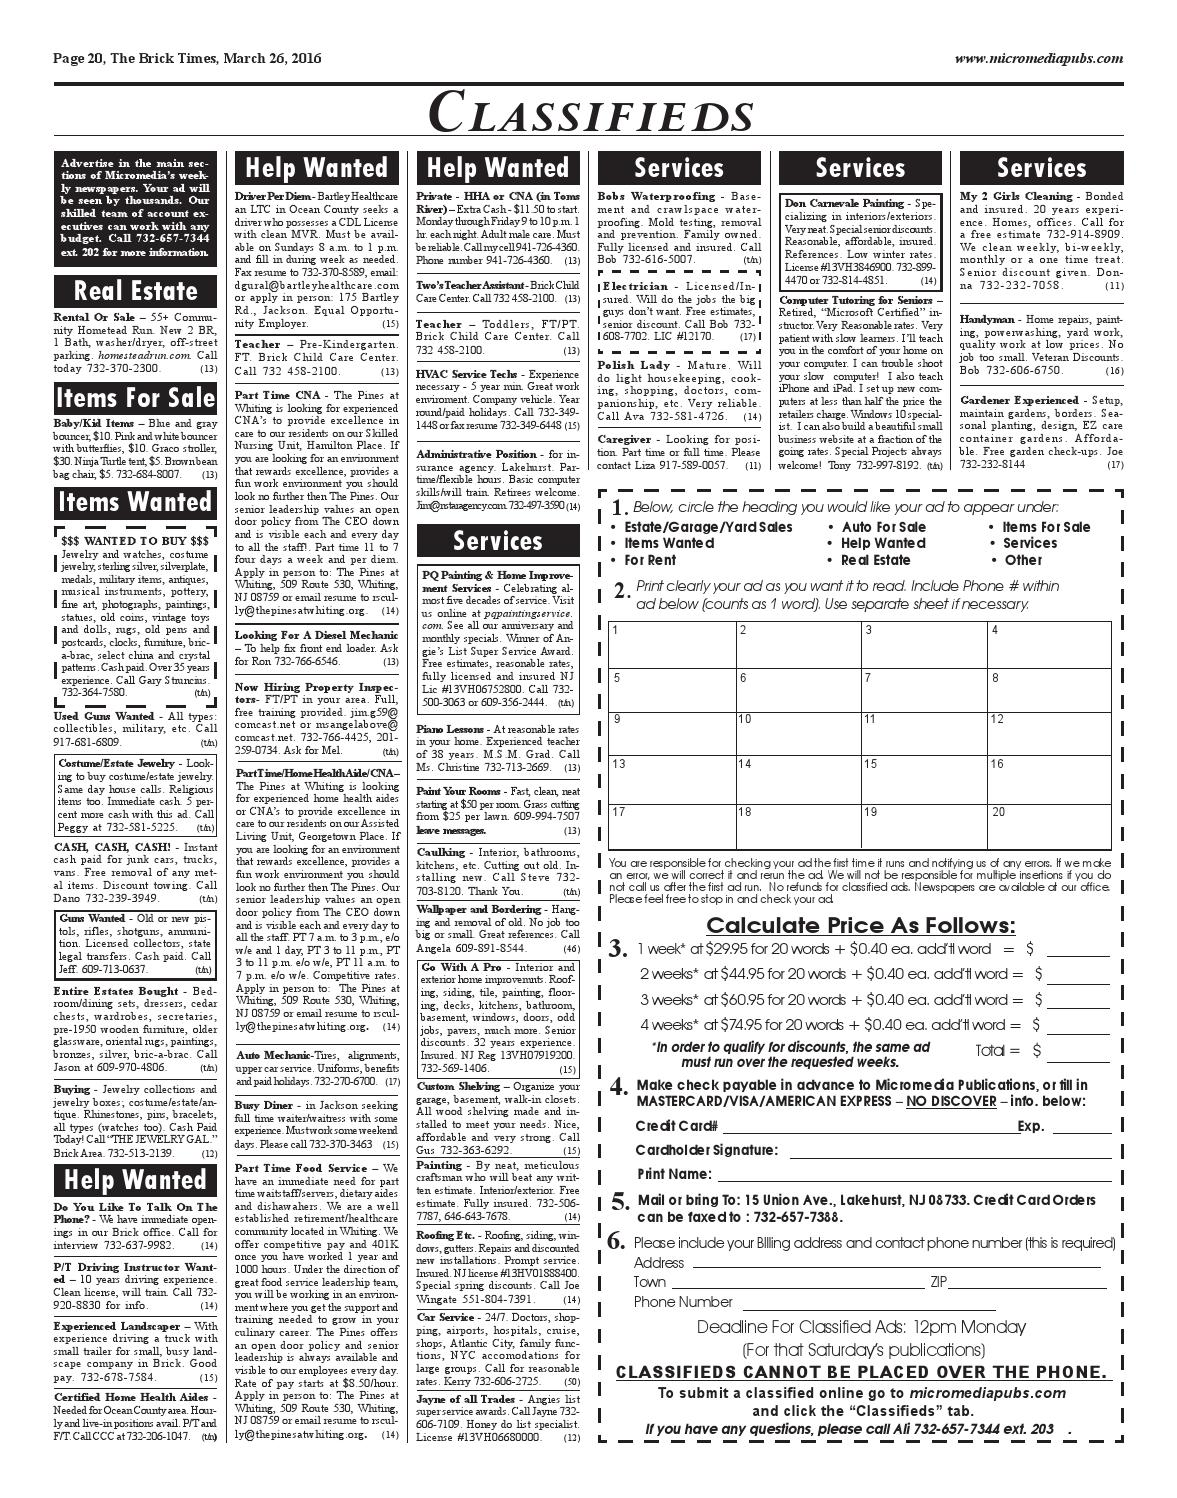 2016-03-26 - The Brick Times by Micromedia Publications